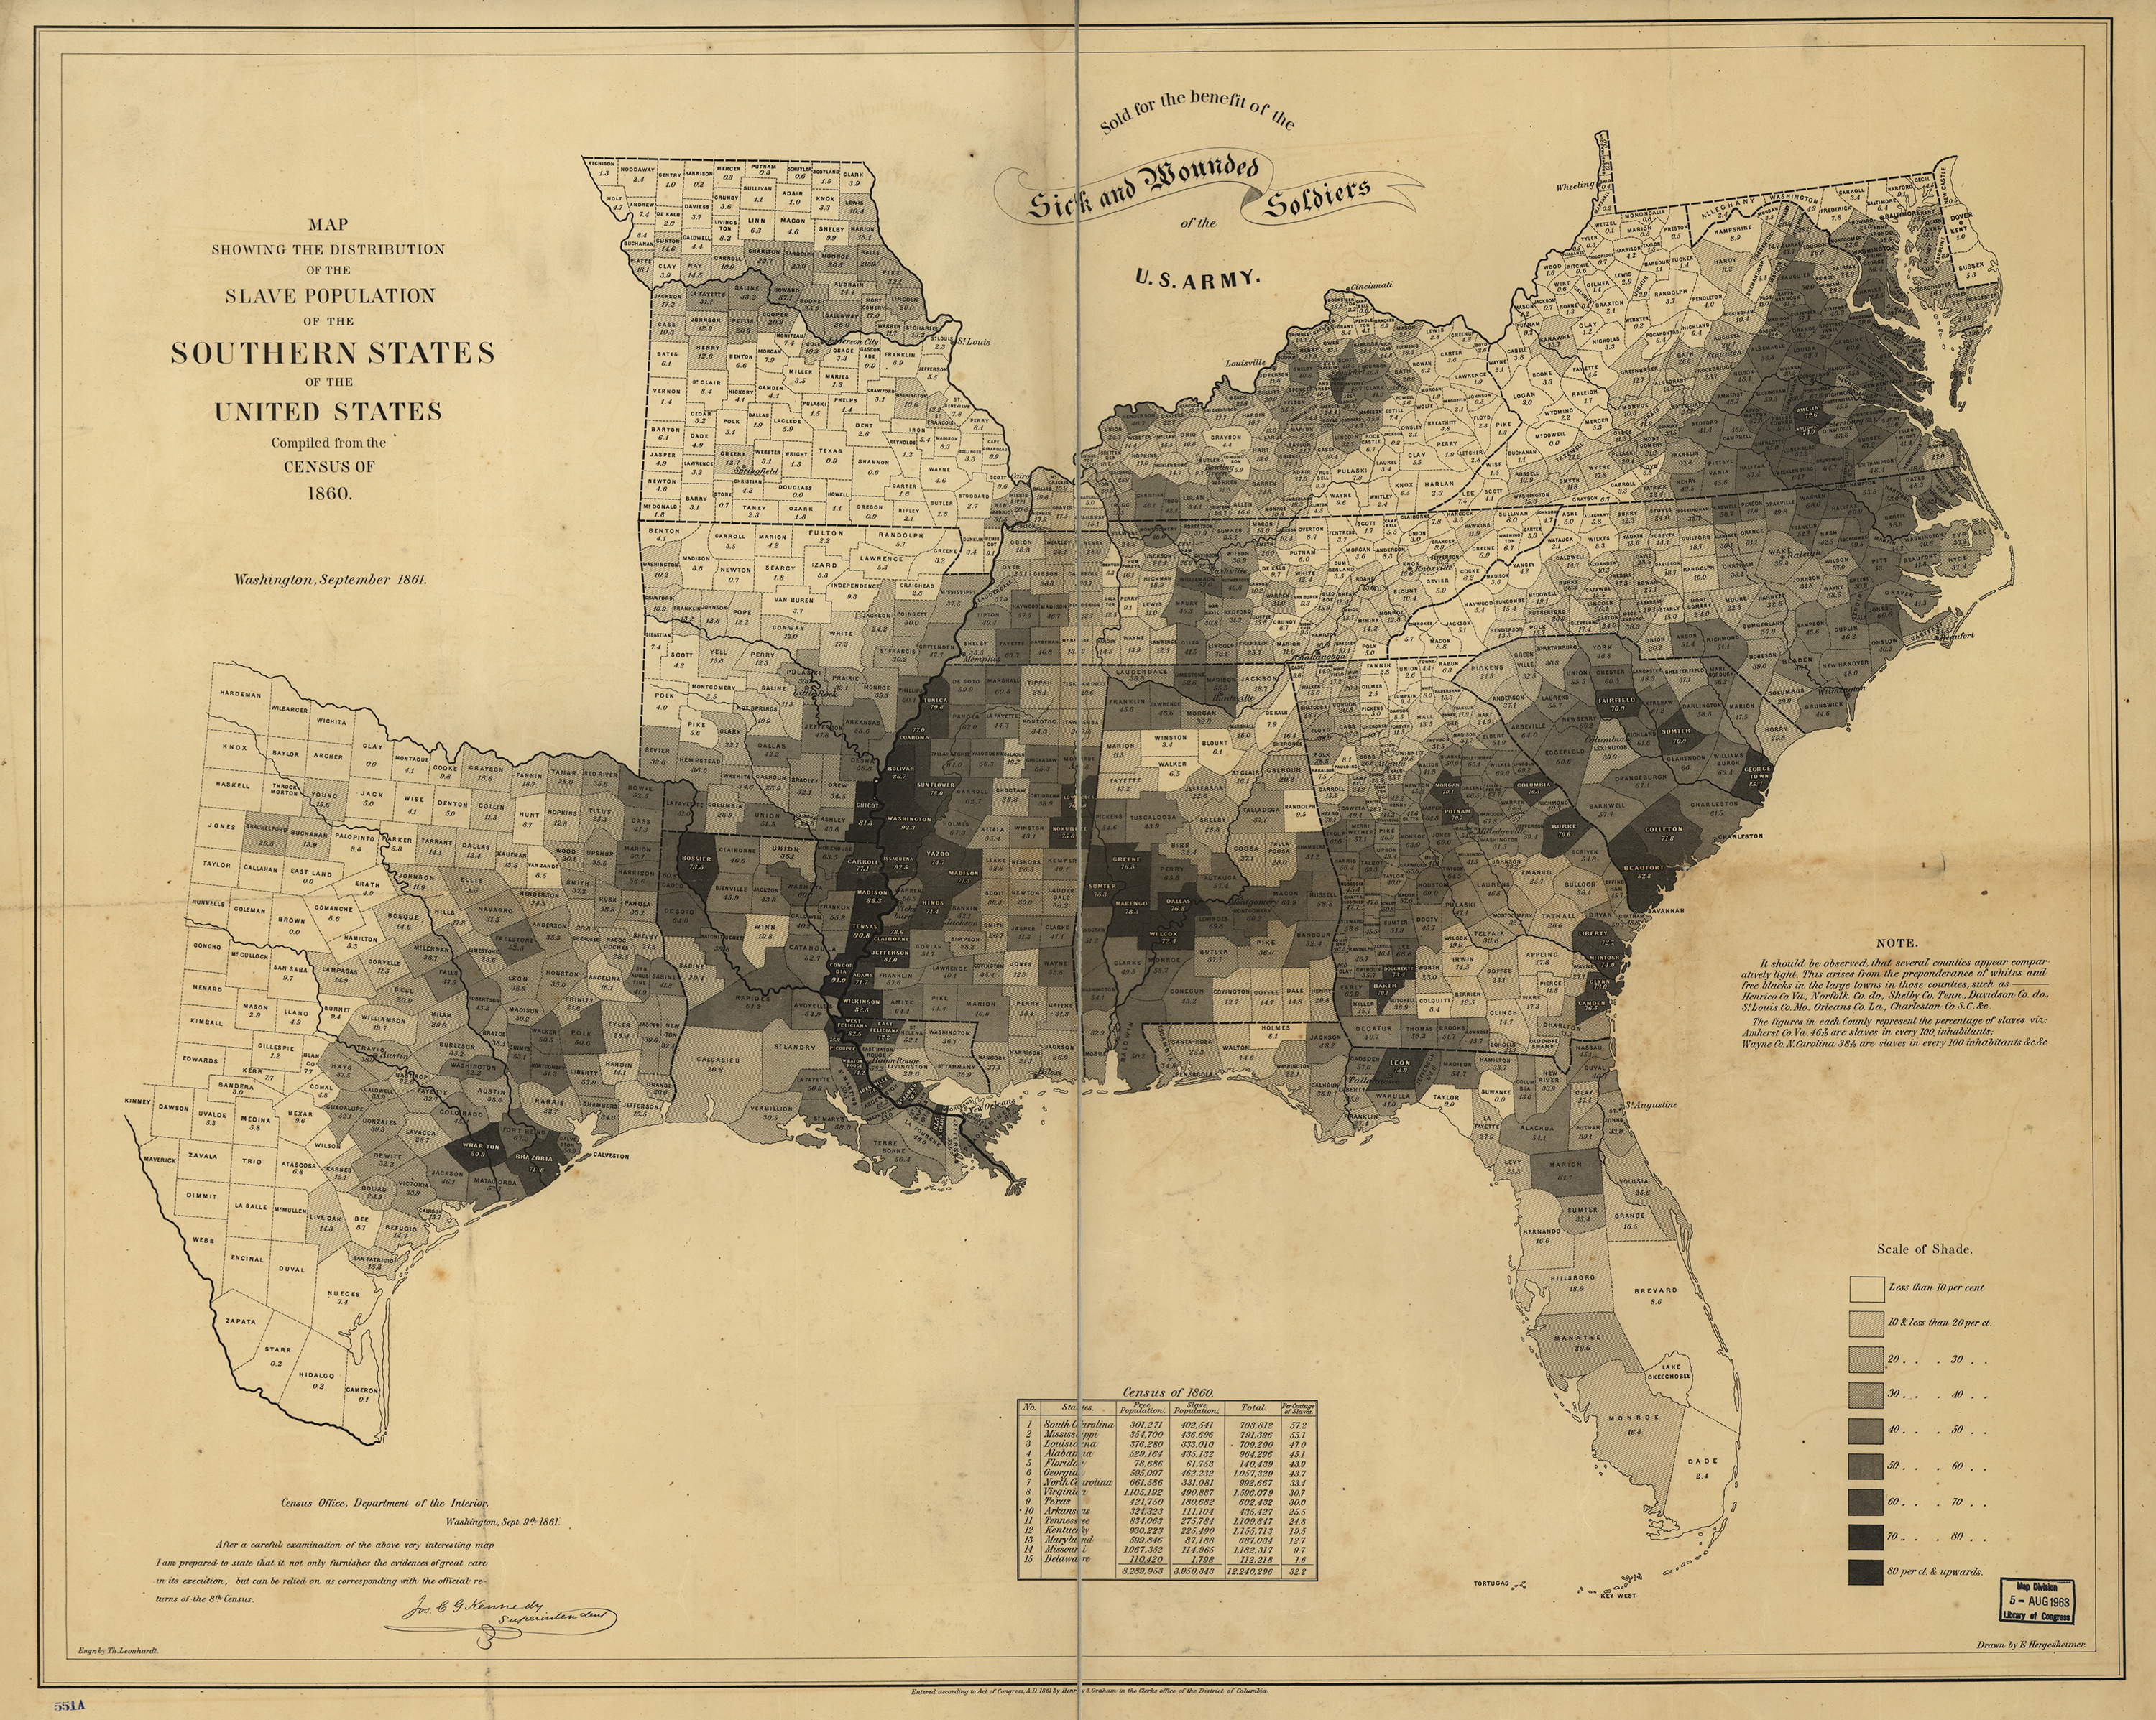 Map showing the distribution of the slave population of the southern states of the United States. Compiled from the census of 1860.